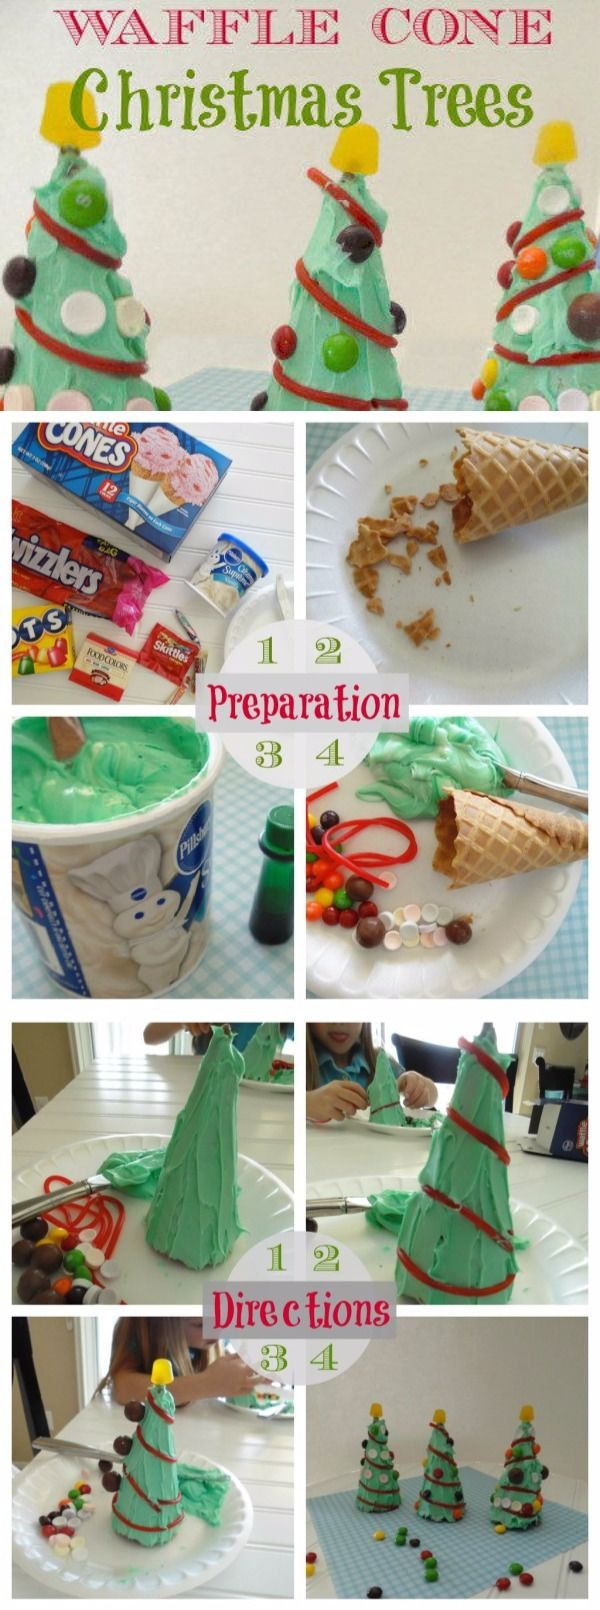 How To Make Waffle Cone Christmas Trees Pictures Photos And Images For Facebook Tumblr Pinterest And Twitter